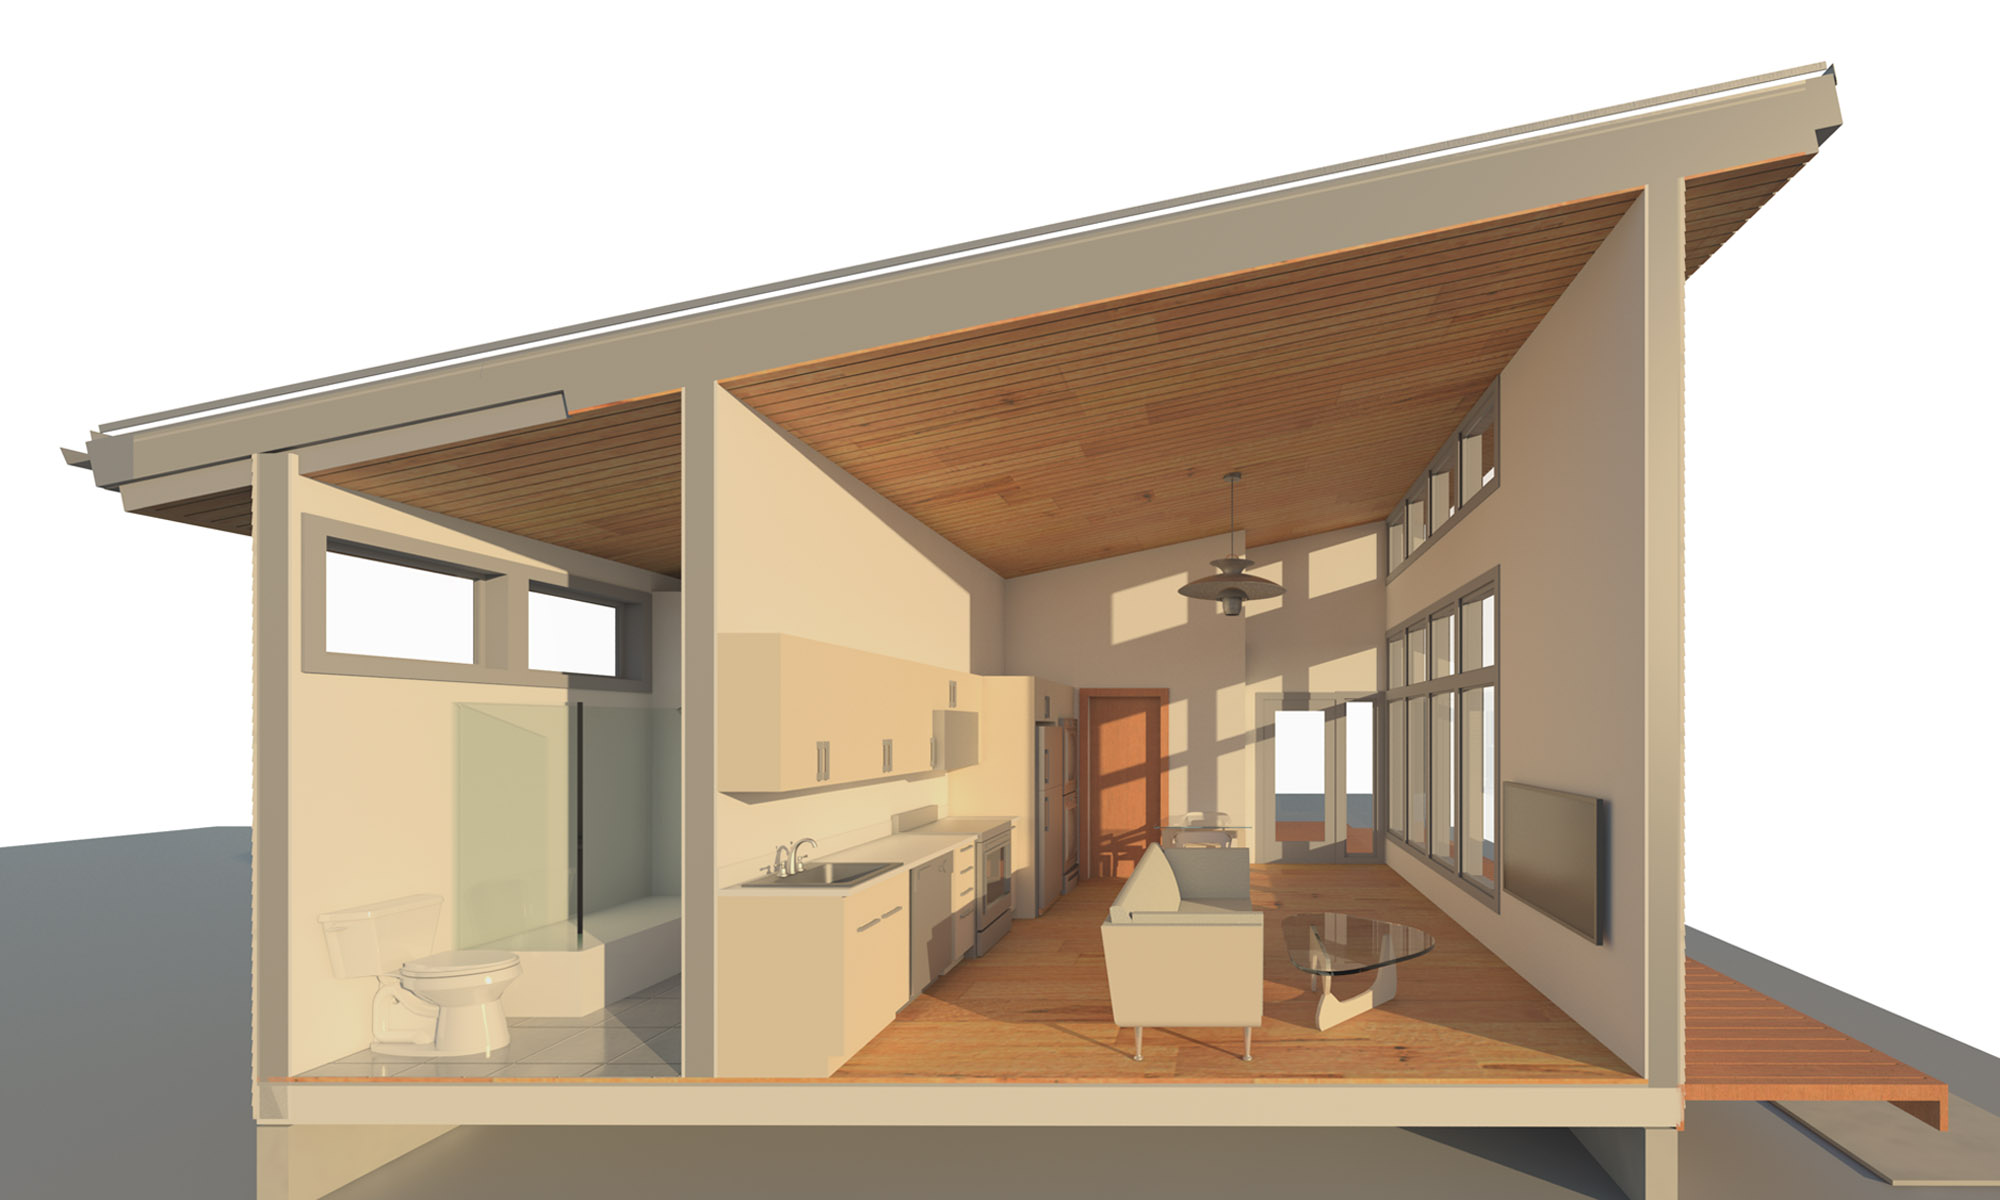 rendering of an accessory dwelling unit